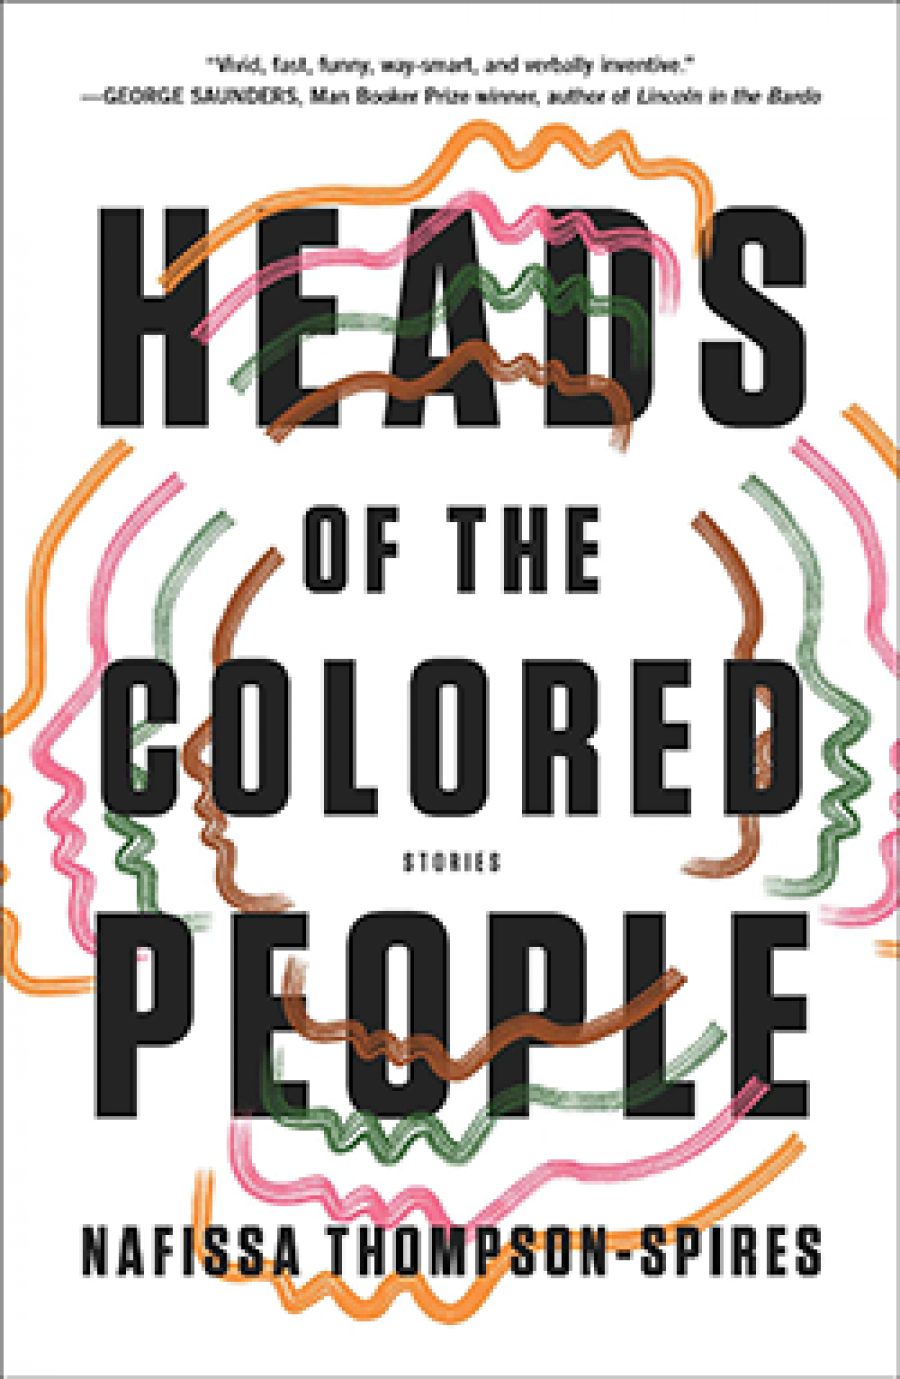 Book Cover with colorful head silhouettes